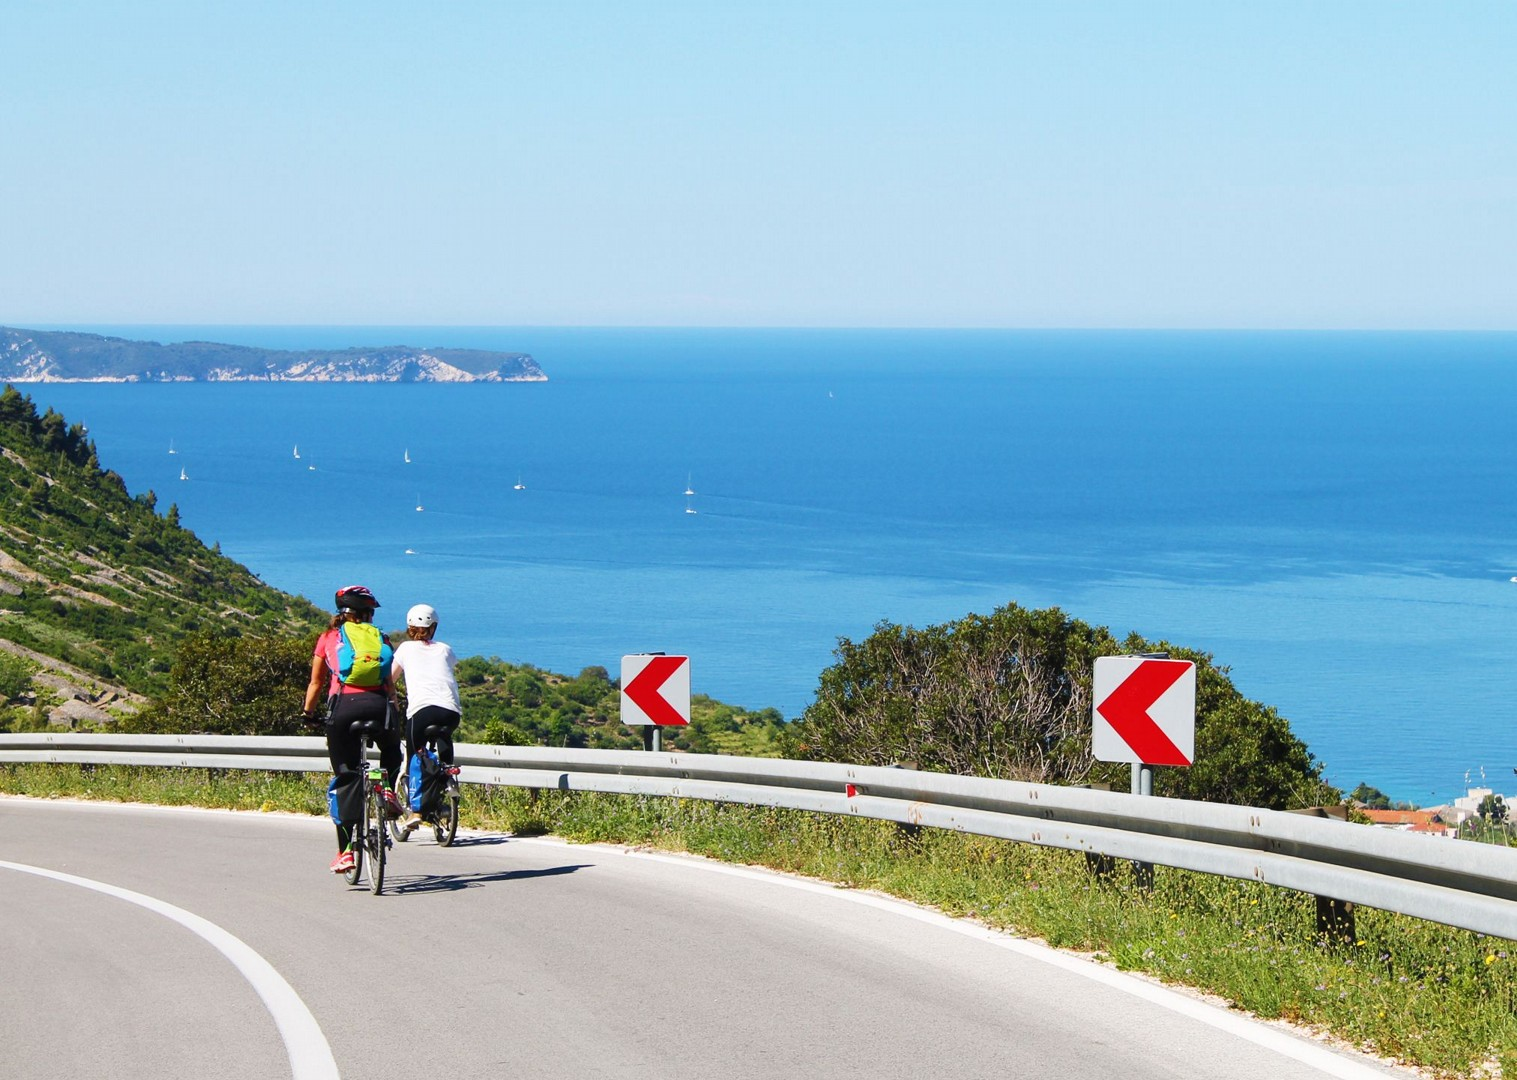 leisurely-cycling-through-southern-dalamtia.jpg - Croatia - Southern Dalmatia - Bike and Boat Holiday - Leisure Cycling